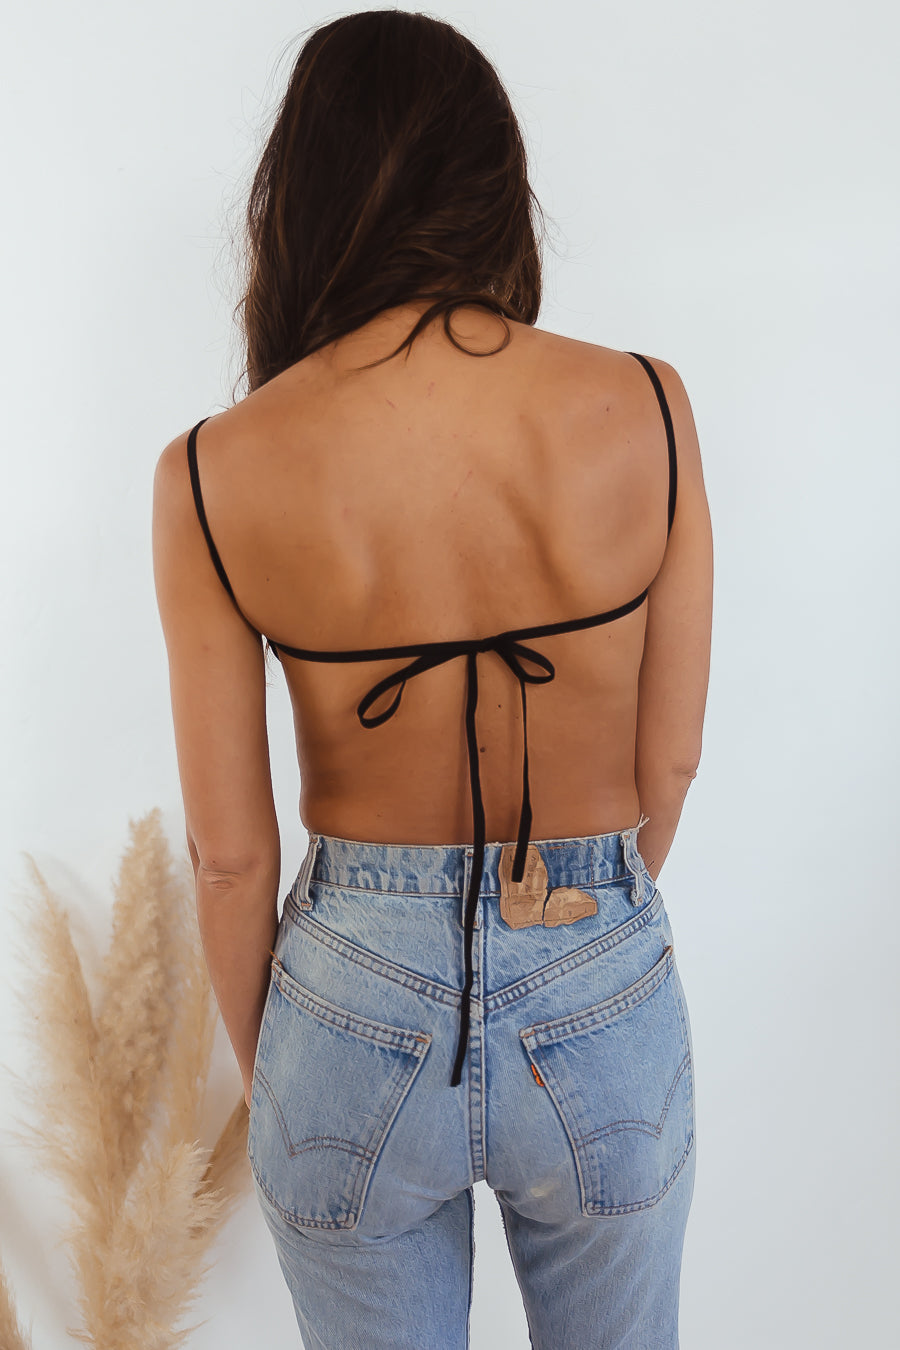 Heartless Open Back Crop Top - Black